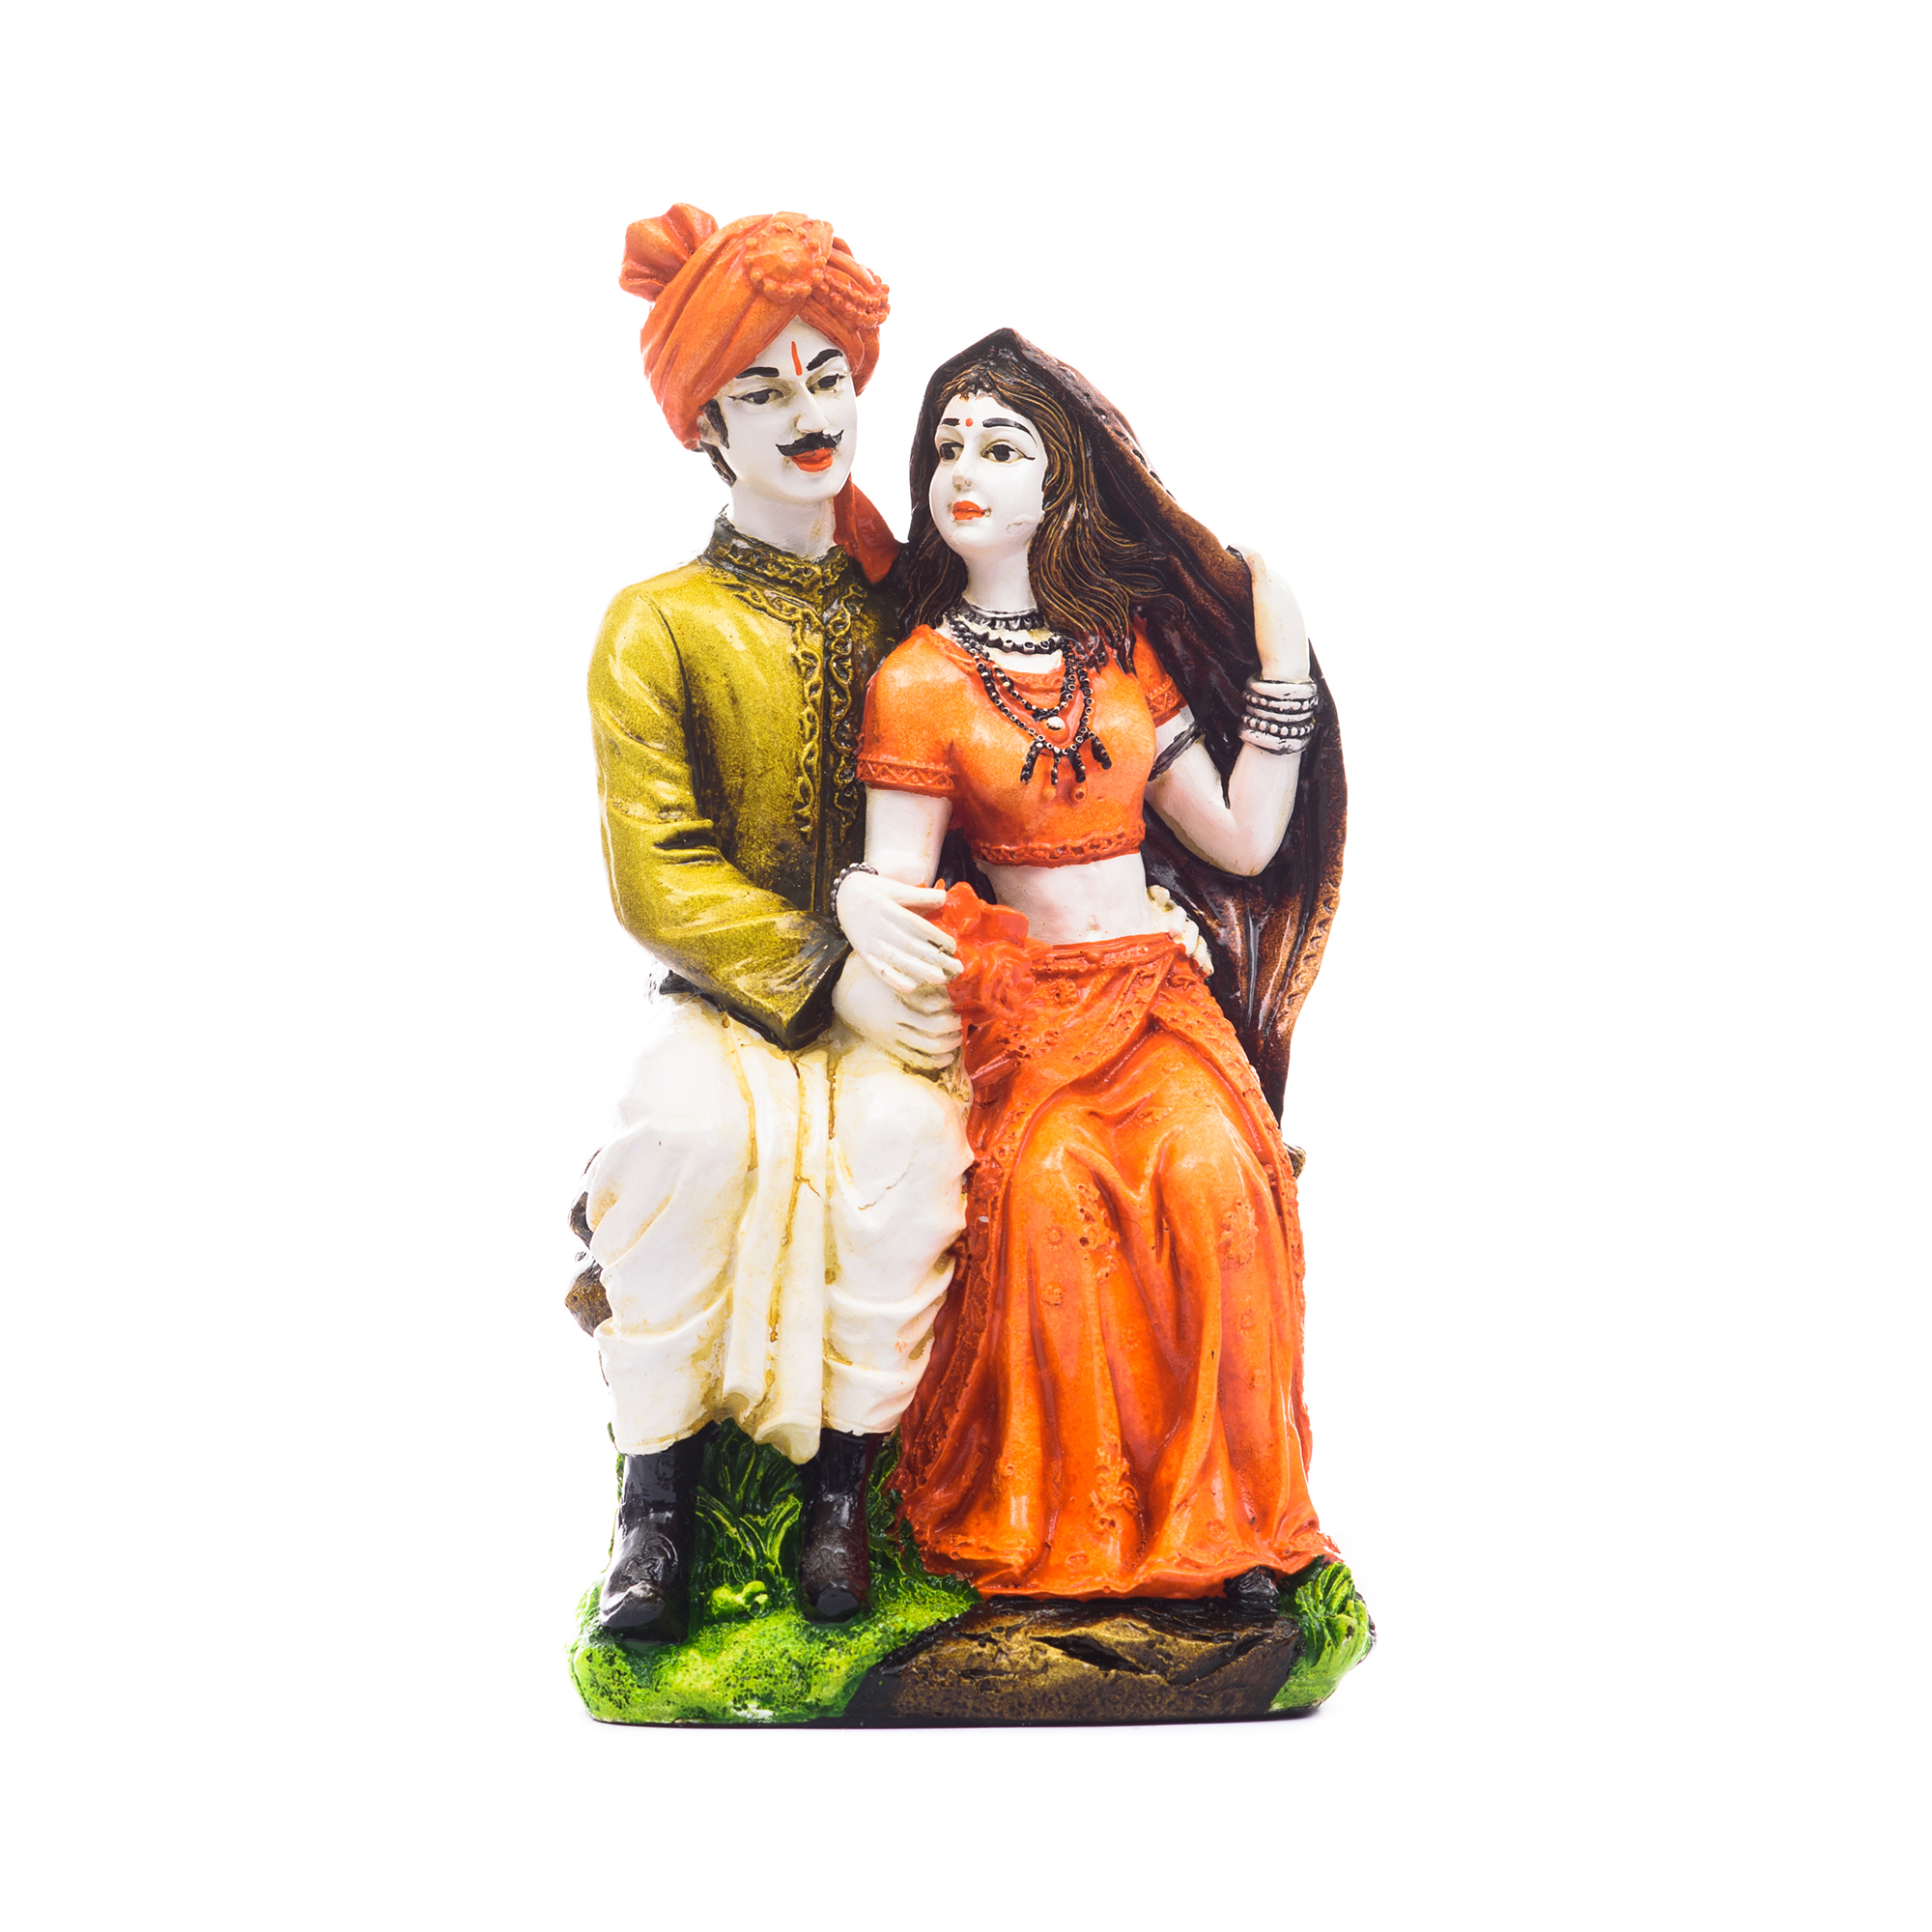 Handicraft Showpiece Home Decor Rajasthani Man and Women Statue Decorative Gift Indian Home Decor